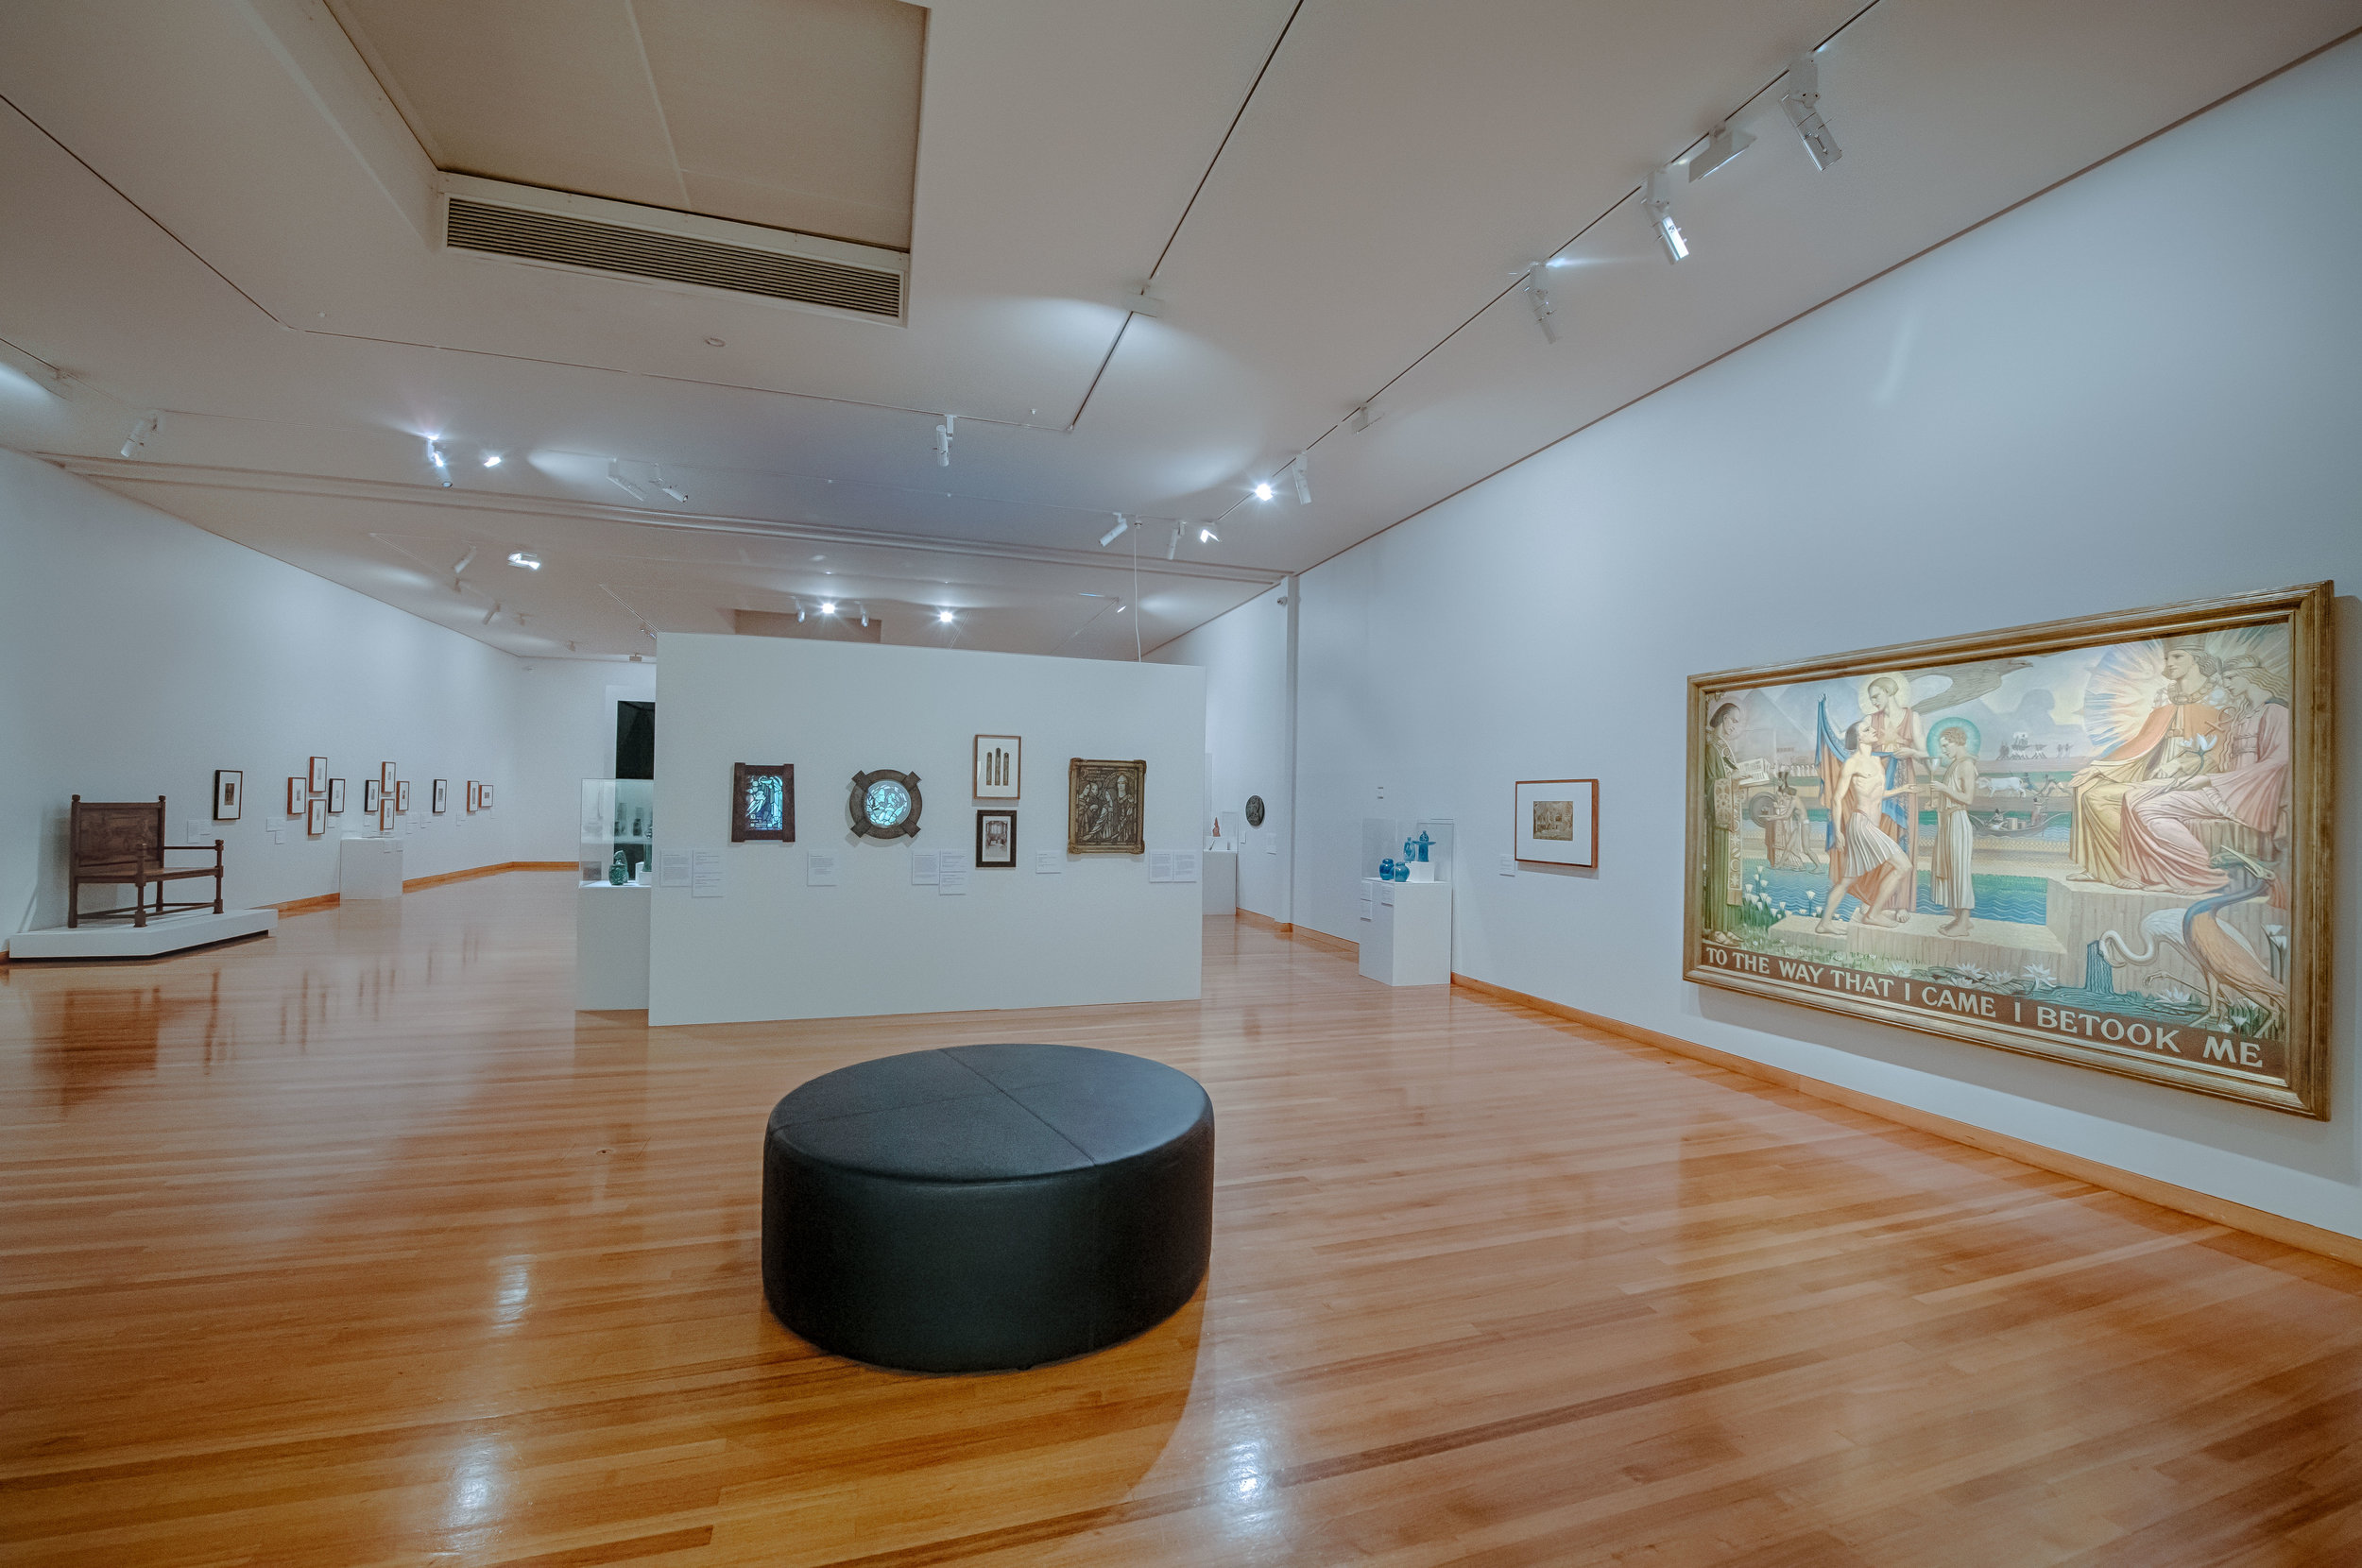 Daughters of the Sun: Christian Waller and Klytie Pate , exhibition installation view, Bendigo Art Gallery, 2018–19; image courtesy Bendigo Art Gallery